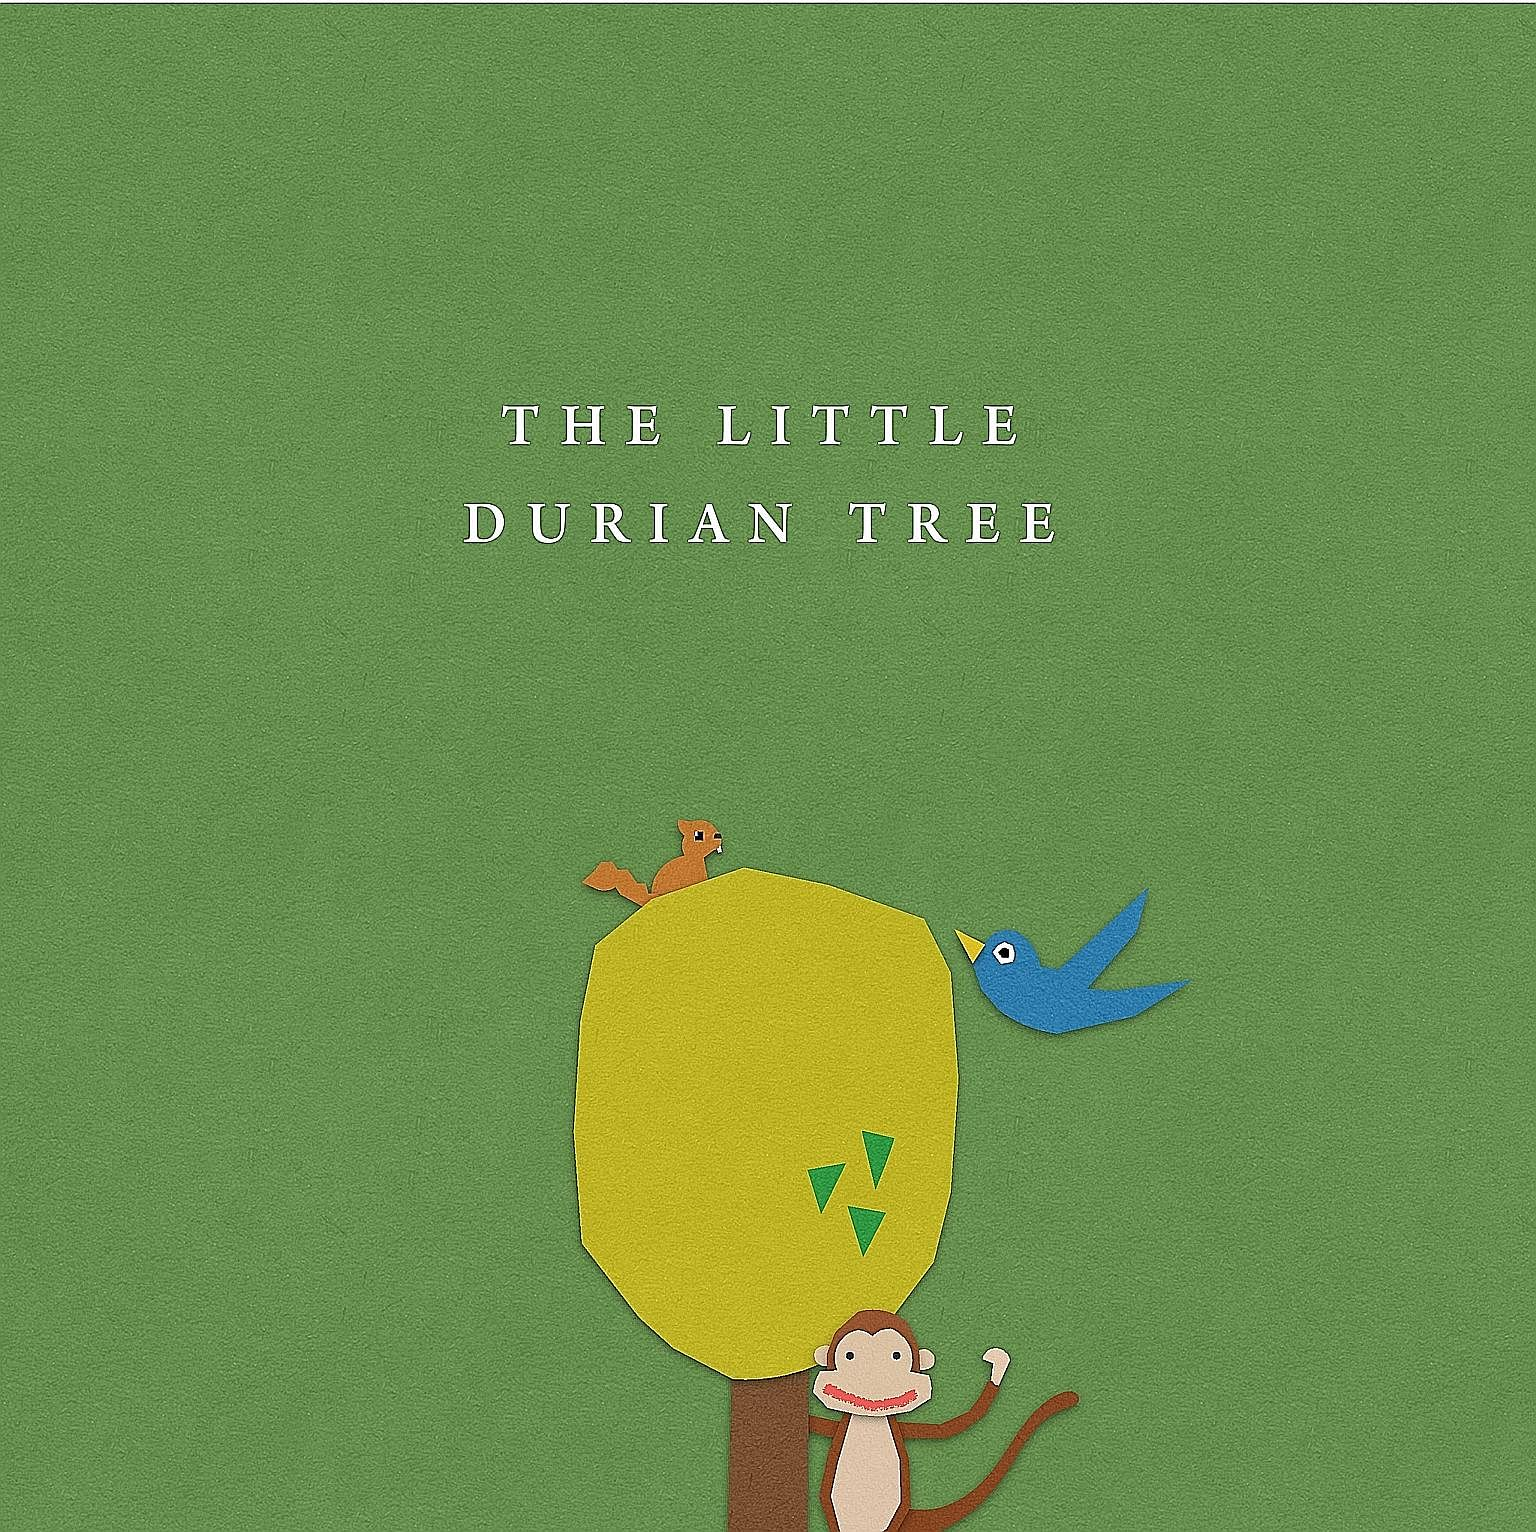 Students Melodie Edith James, Kylen Ho, and Shona Adisri Menon, all 19, are part of the five-member team that produced The Little Durian Tree (above), winner of the Scholastic Picture Book Award.